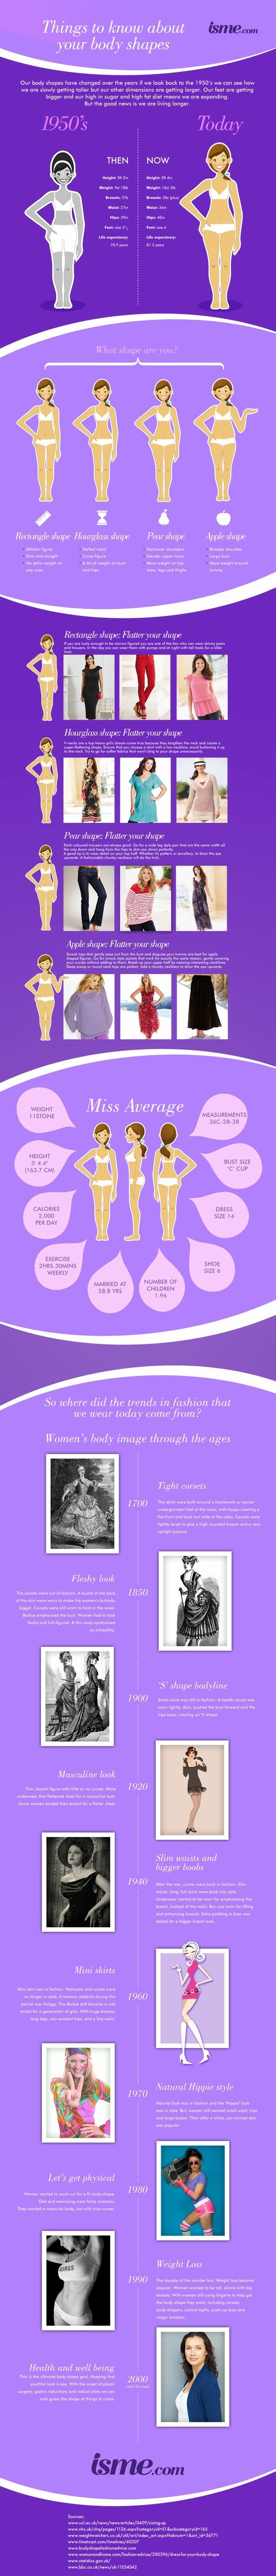 How to dress an apple shaped figure ehow - An Interesting Look Back On The Previous Average And The Current Average Woman And How You Can Dress Your Body Now For Any And All